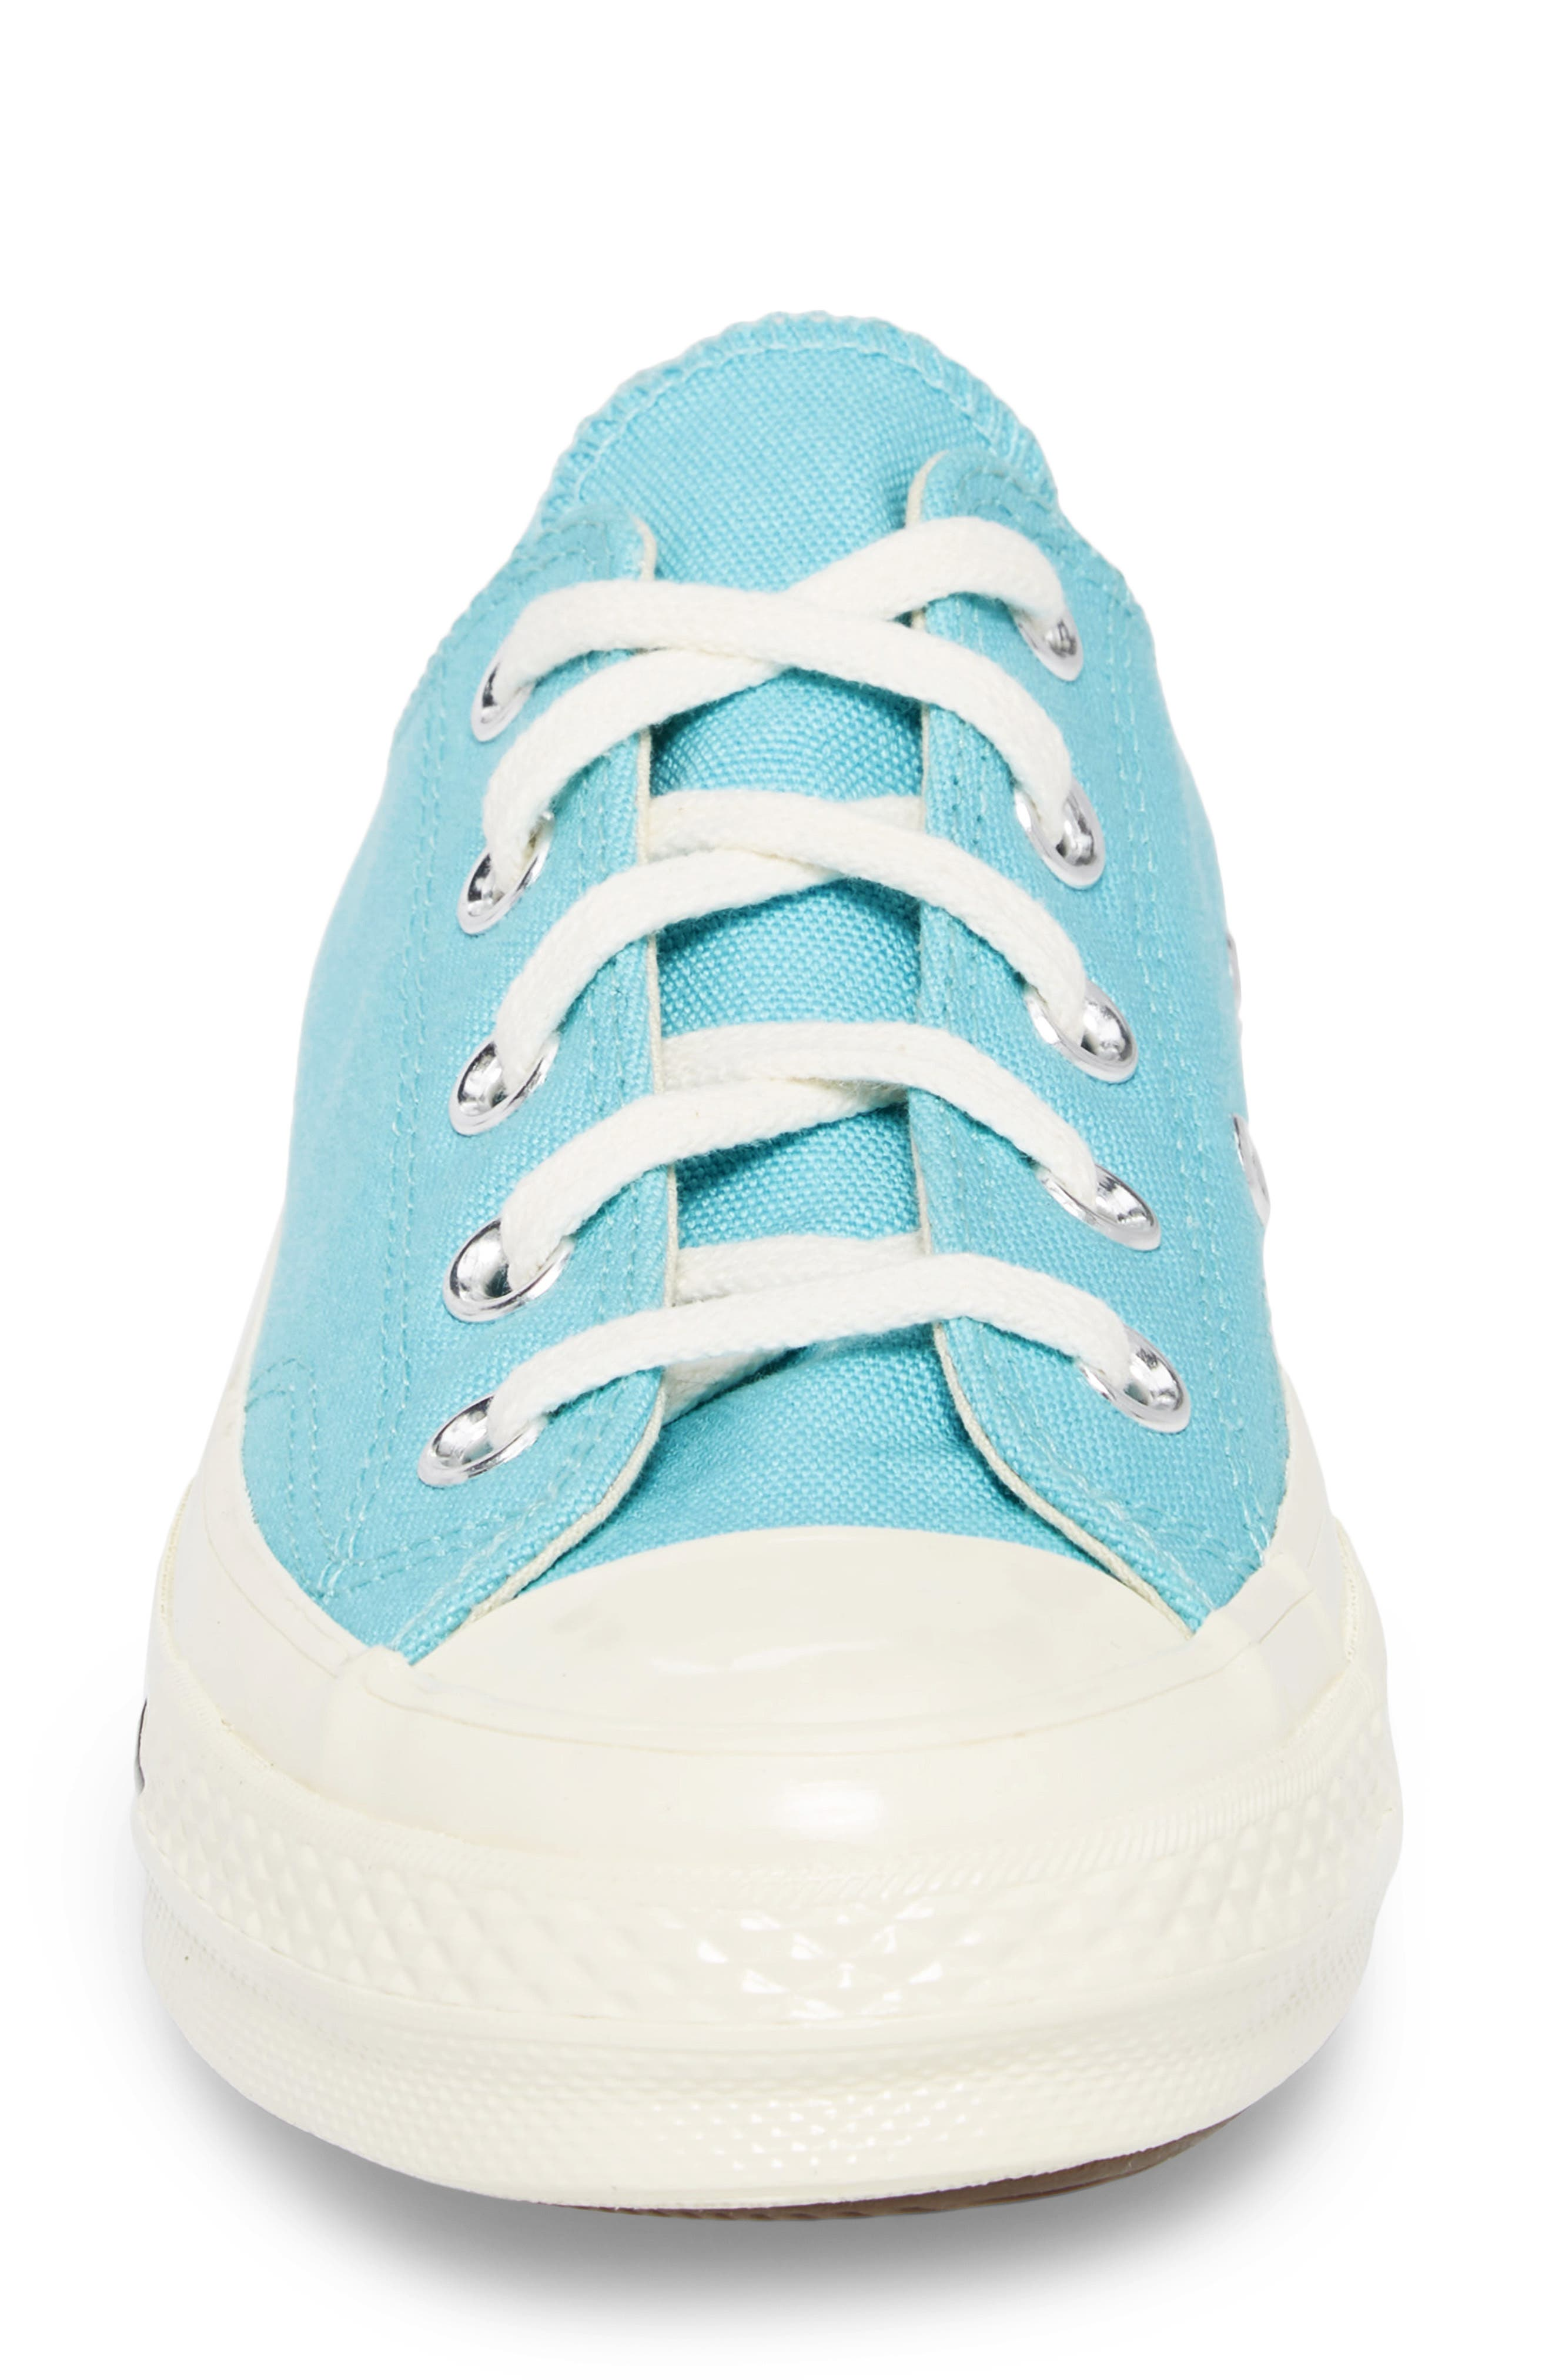 Chuck Taylor<sup>®</sup> All Star<sup>®</sup> '70s Brights Low Top Sneaker,                             Alternate thumbnail 4, color,                             Bleached Aqua